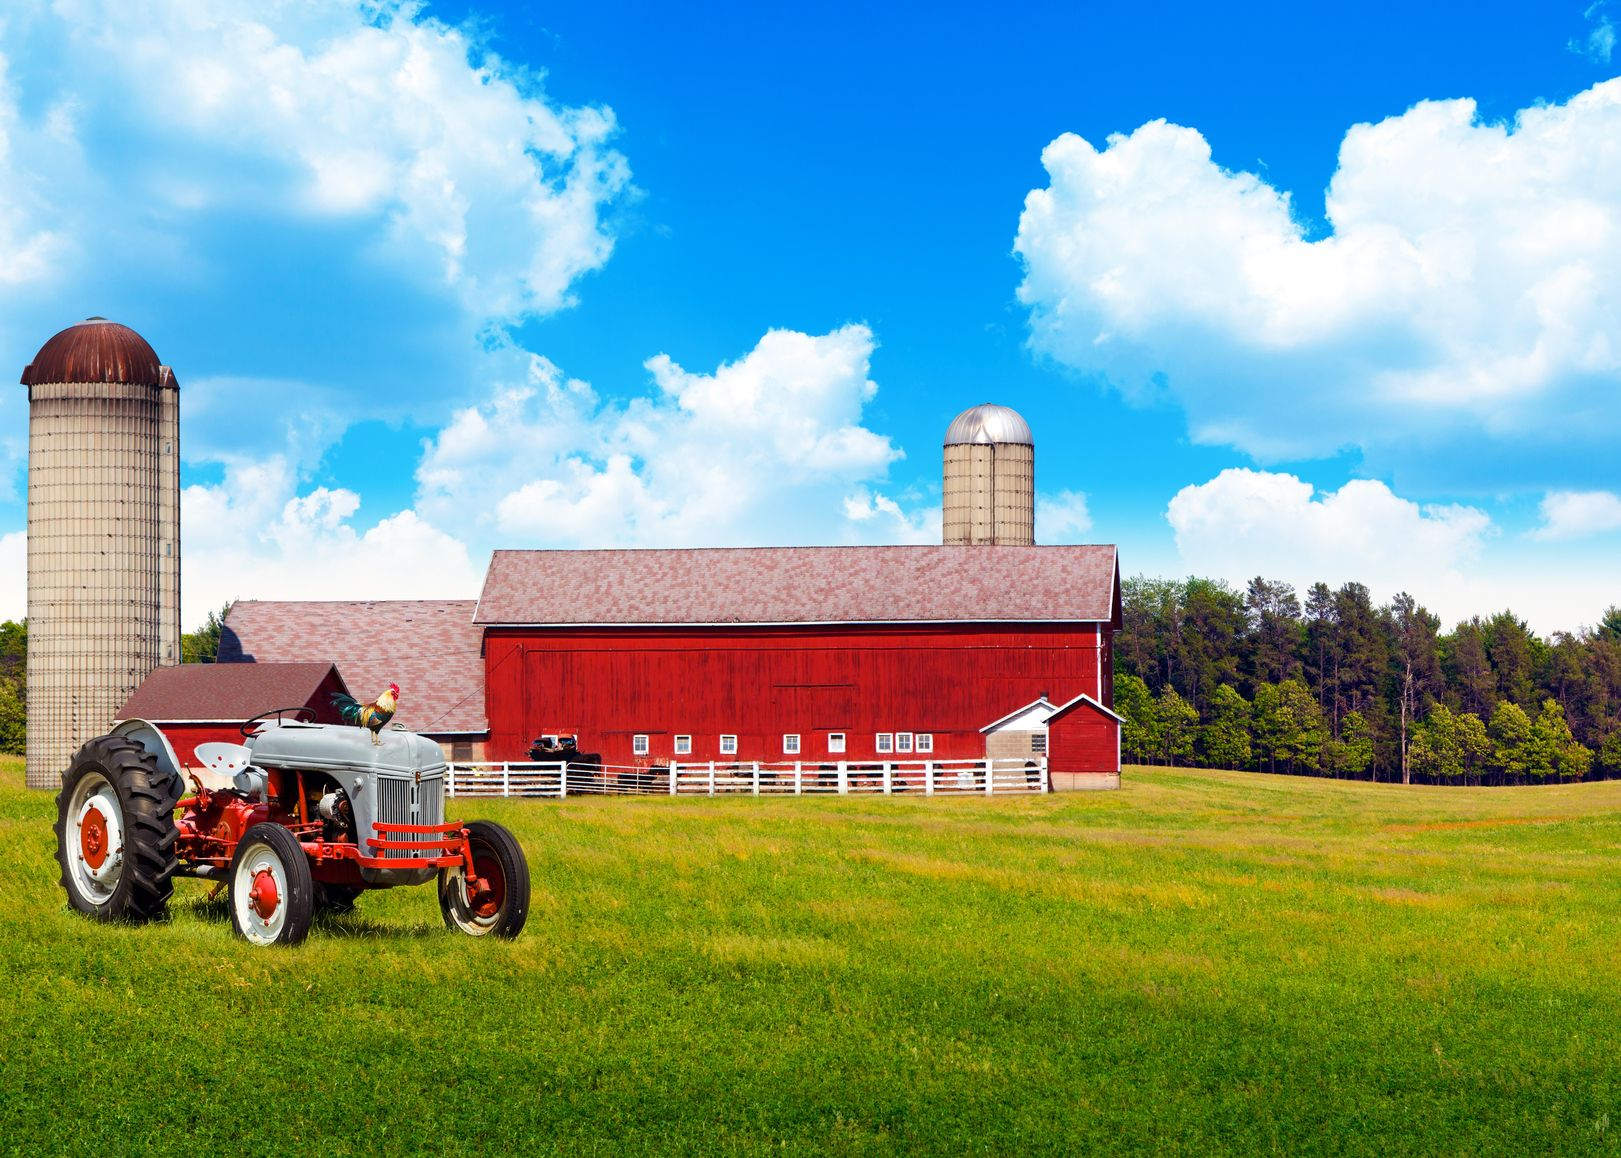 Sacramento Farm & Ranch Insurance